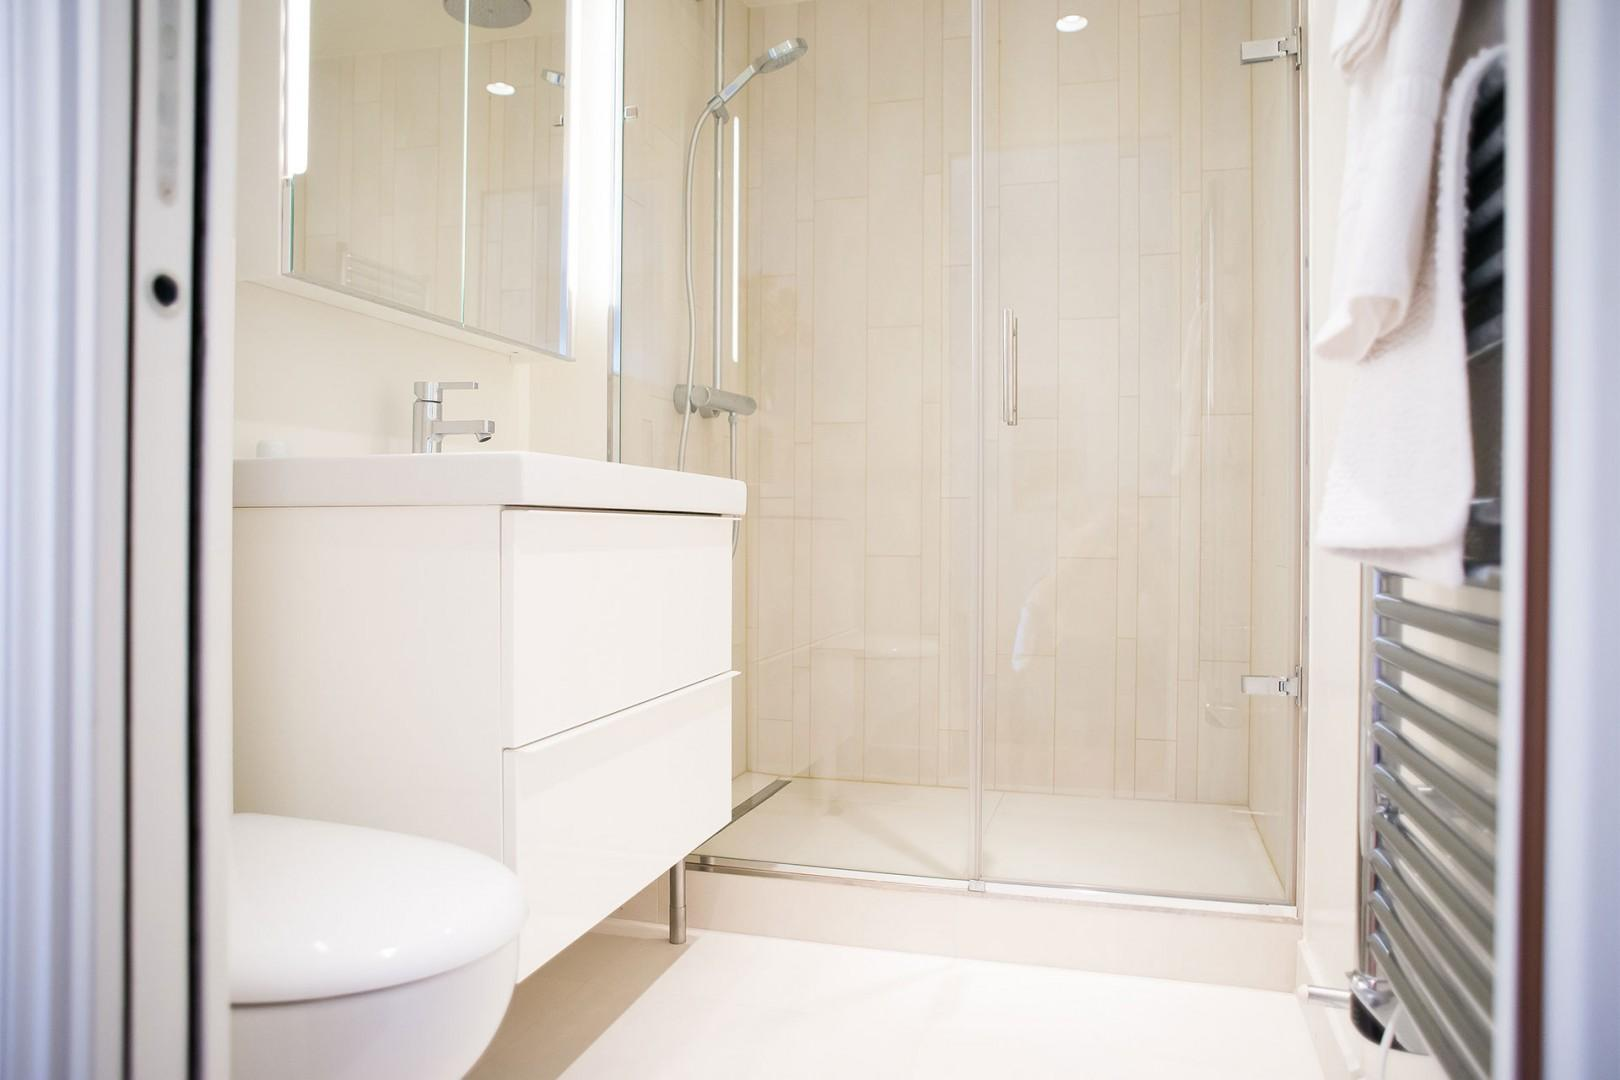 The luxurious en suite bathroom has a shower, sink and toilet.